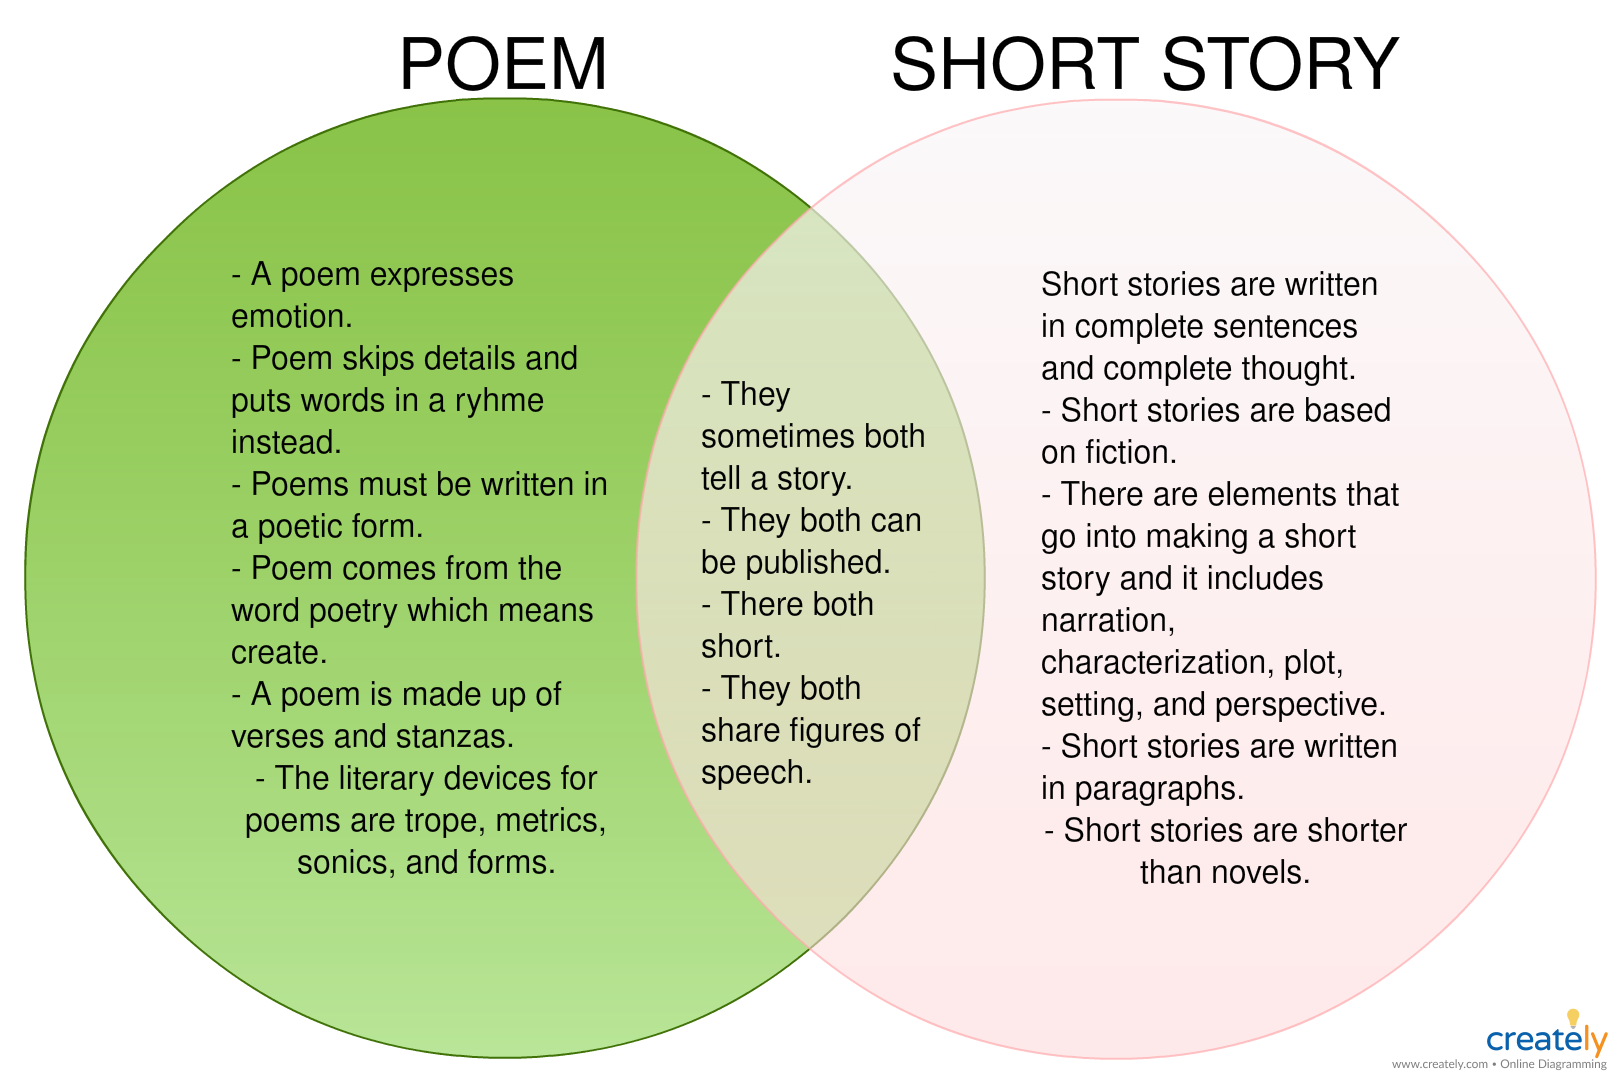 hight resolution of poem vs short story venn diagram similarities and differences between short story and poem you can edit this template and create your own diagram